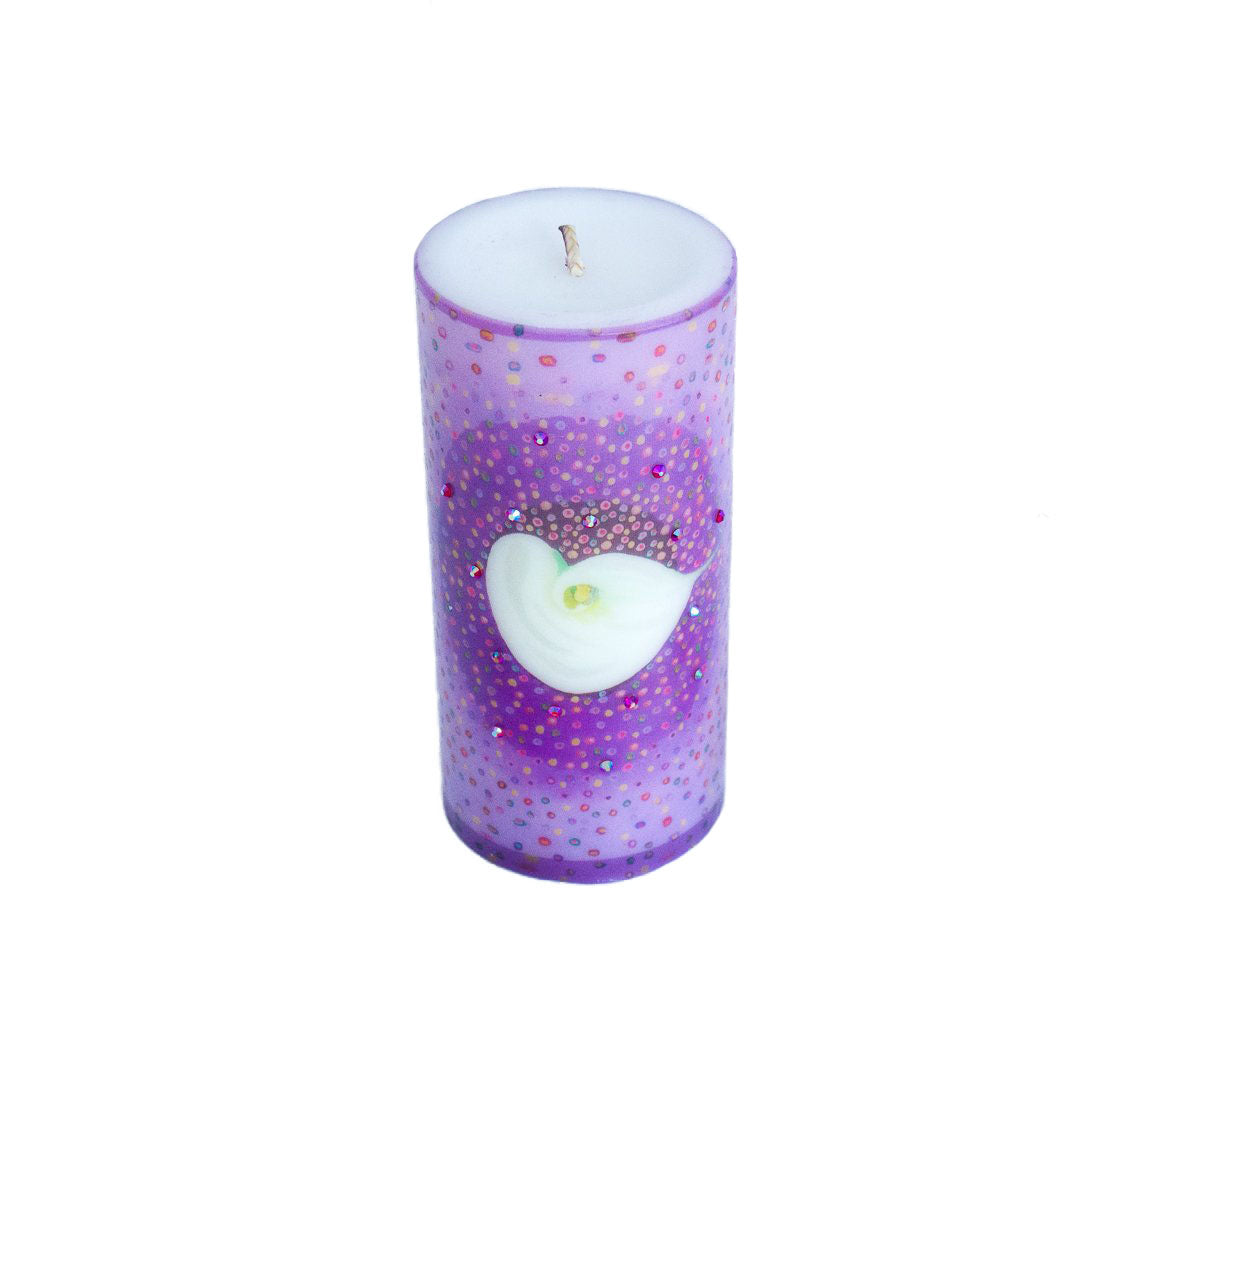 Swarovski Crystals Pillar Candle FLOAT Calla Lily Flower Unscented